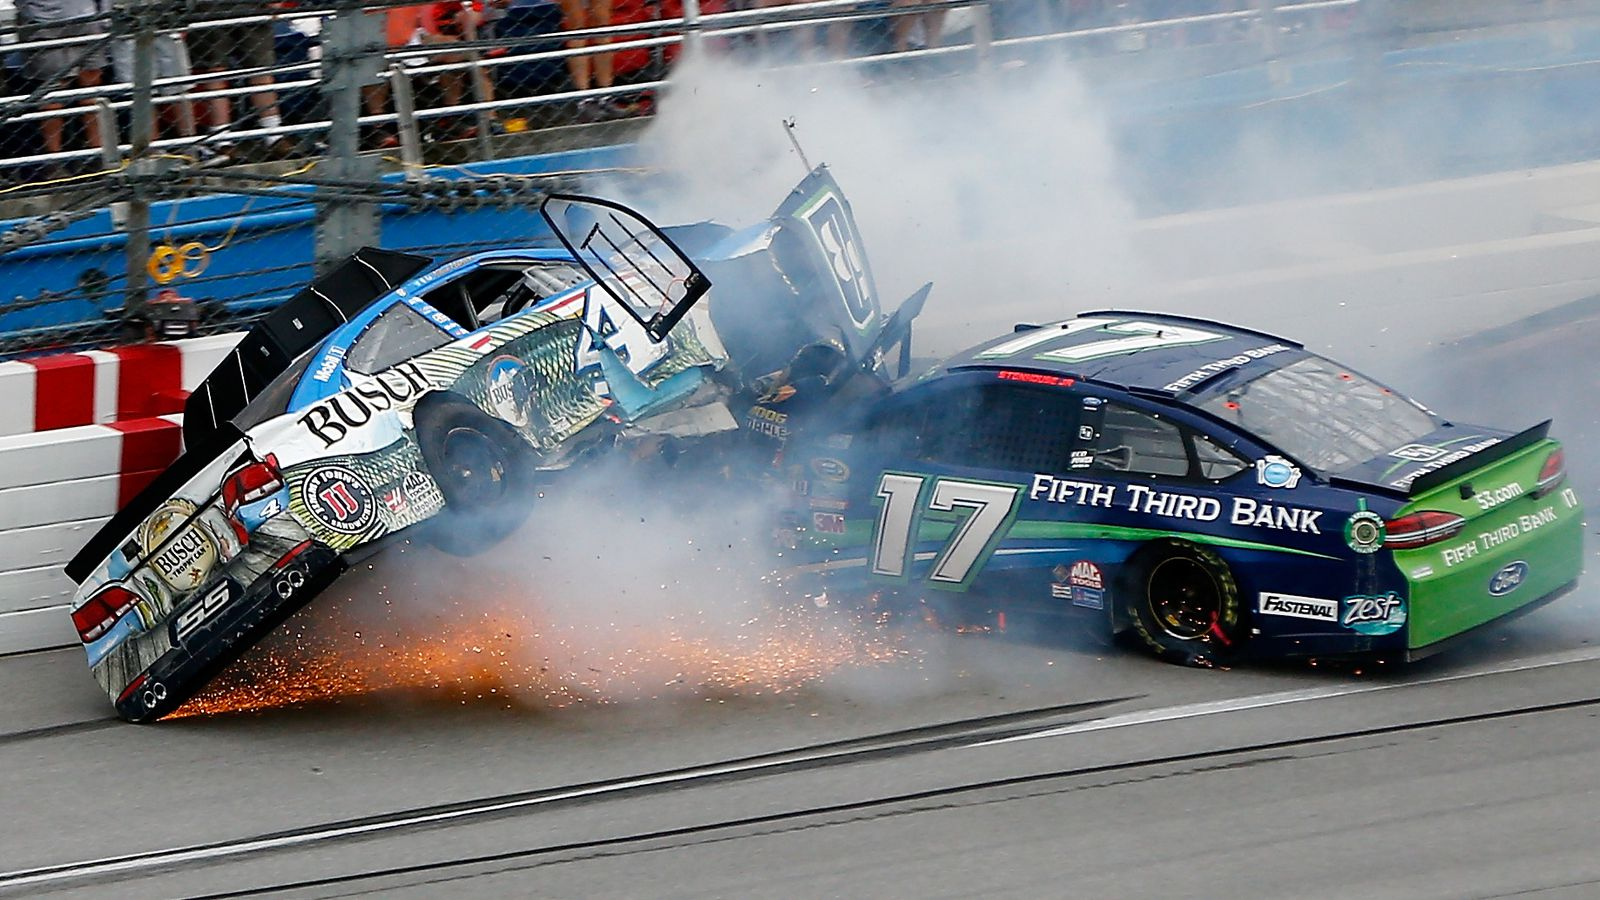 Talladega the latest evidence that nascar restrictor plate insanity needs to stop sbnation com